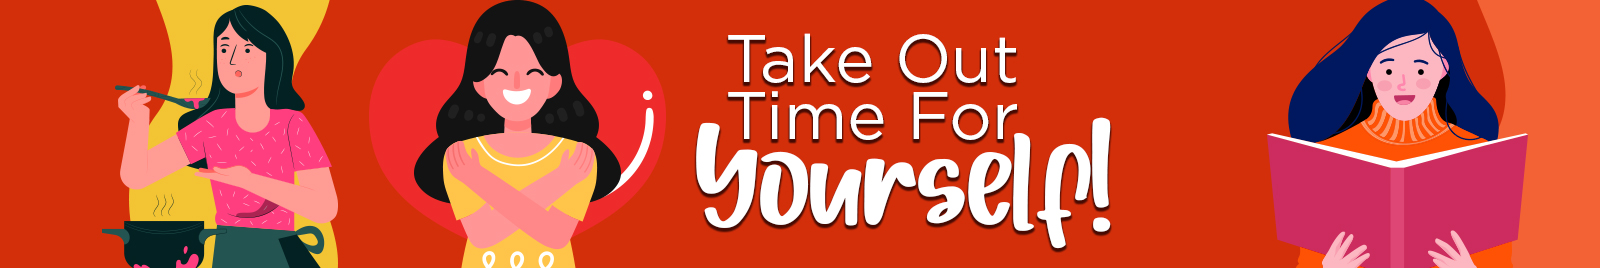 Take Out Time For Yourself!